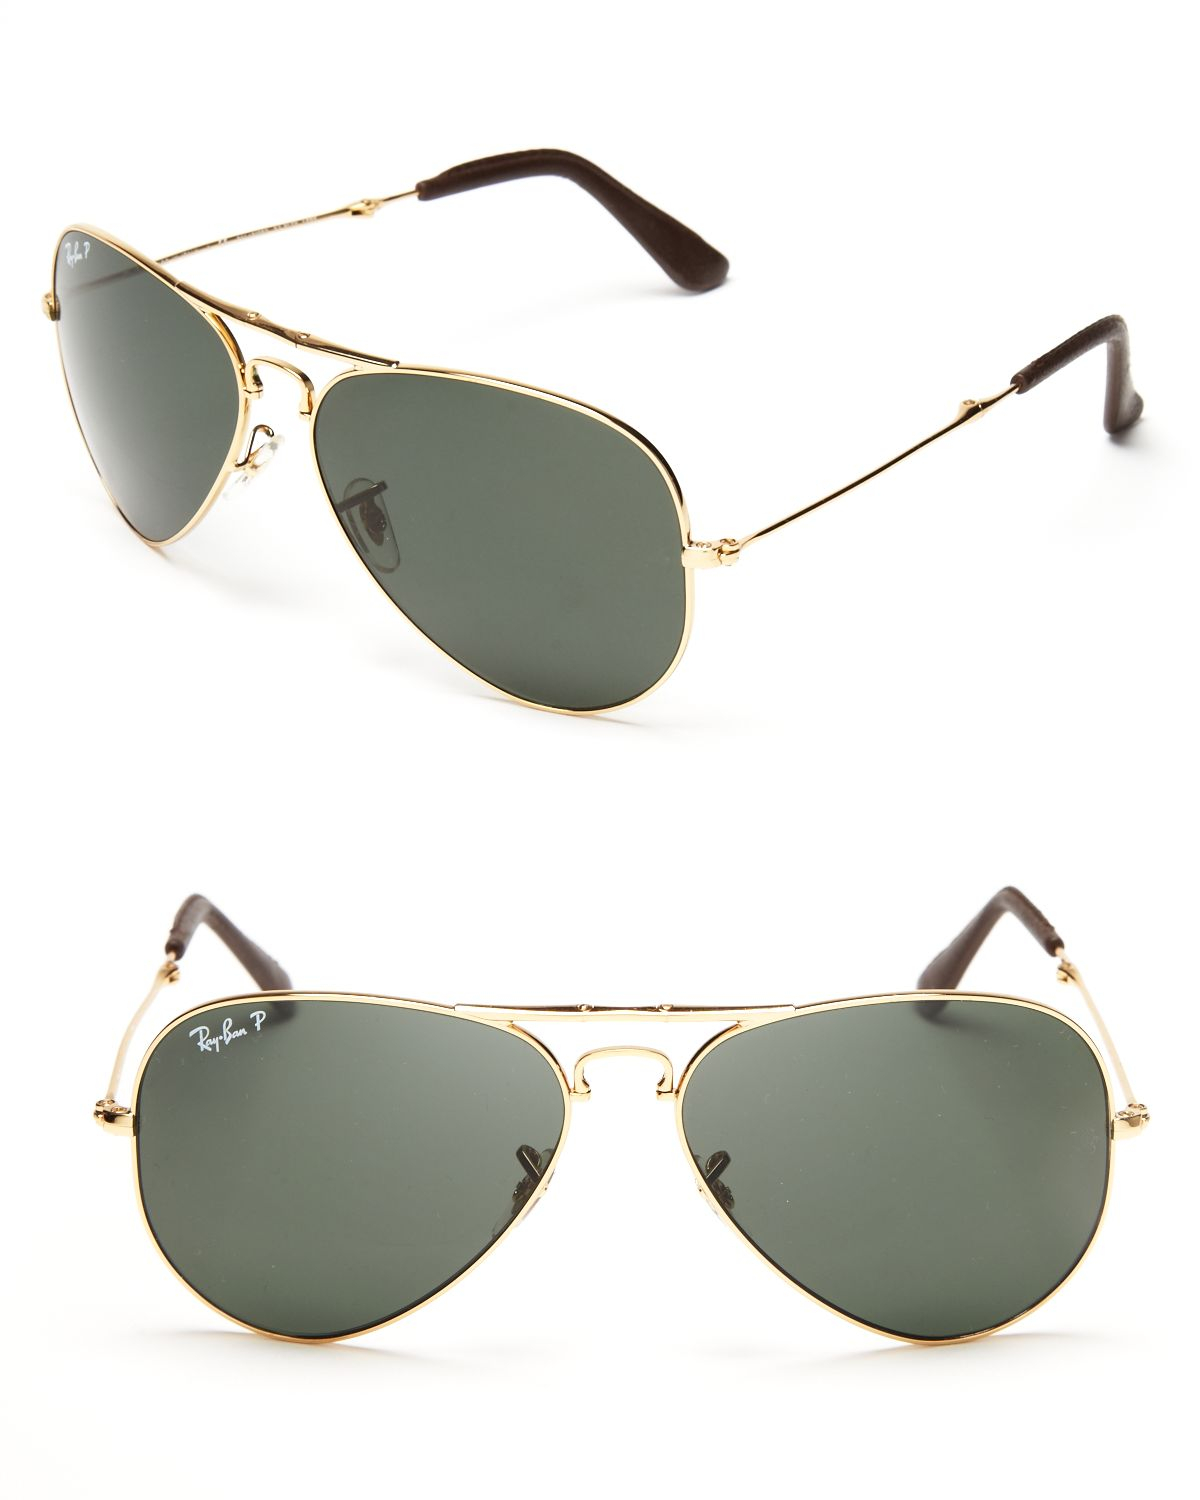 07c29a963e388 Limited Edition Aviators Ray Ban « Heritage Malta